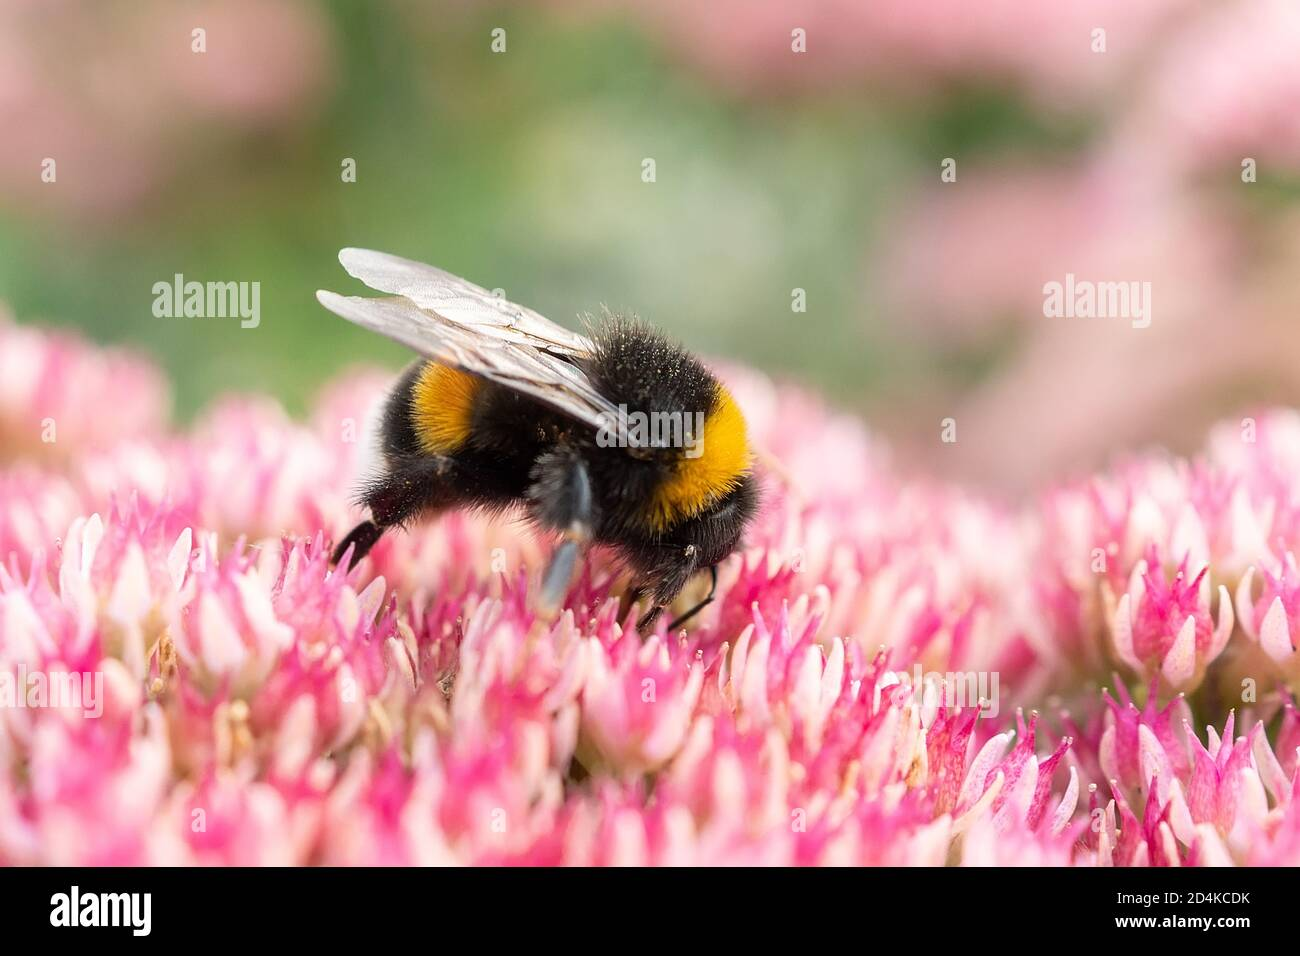 Macro photography of a bumblebee feeding from a red clover flower. Stock Photo